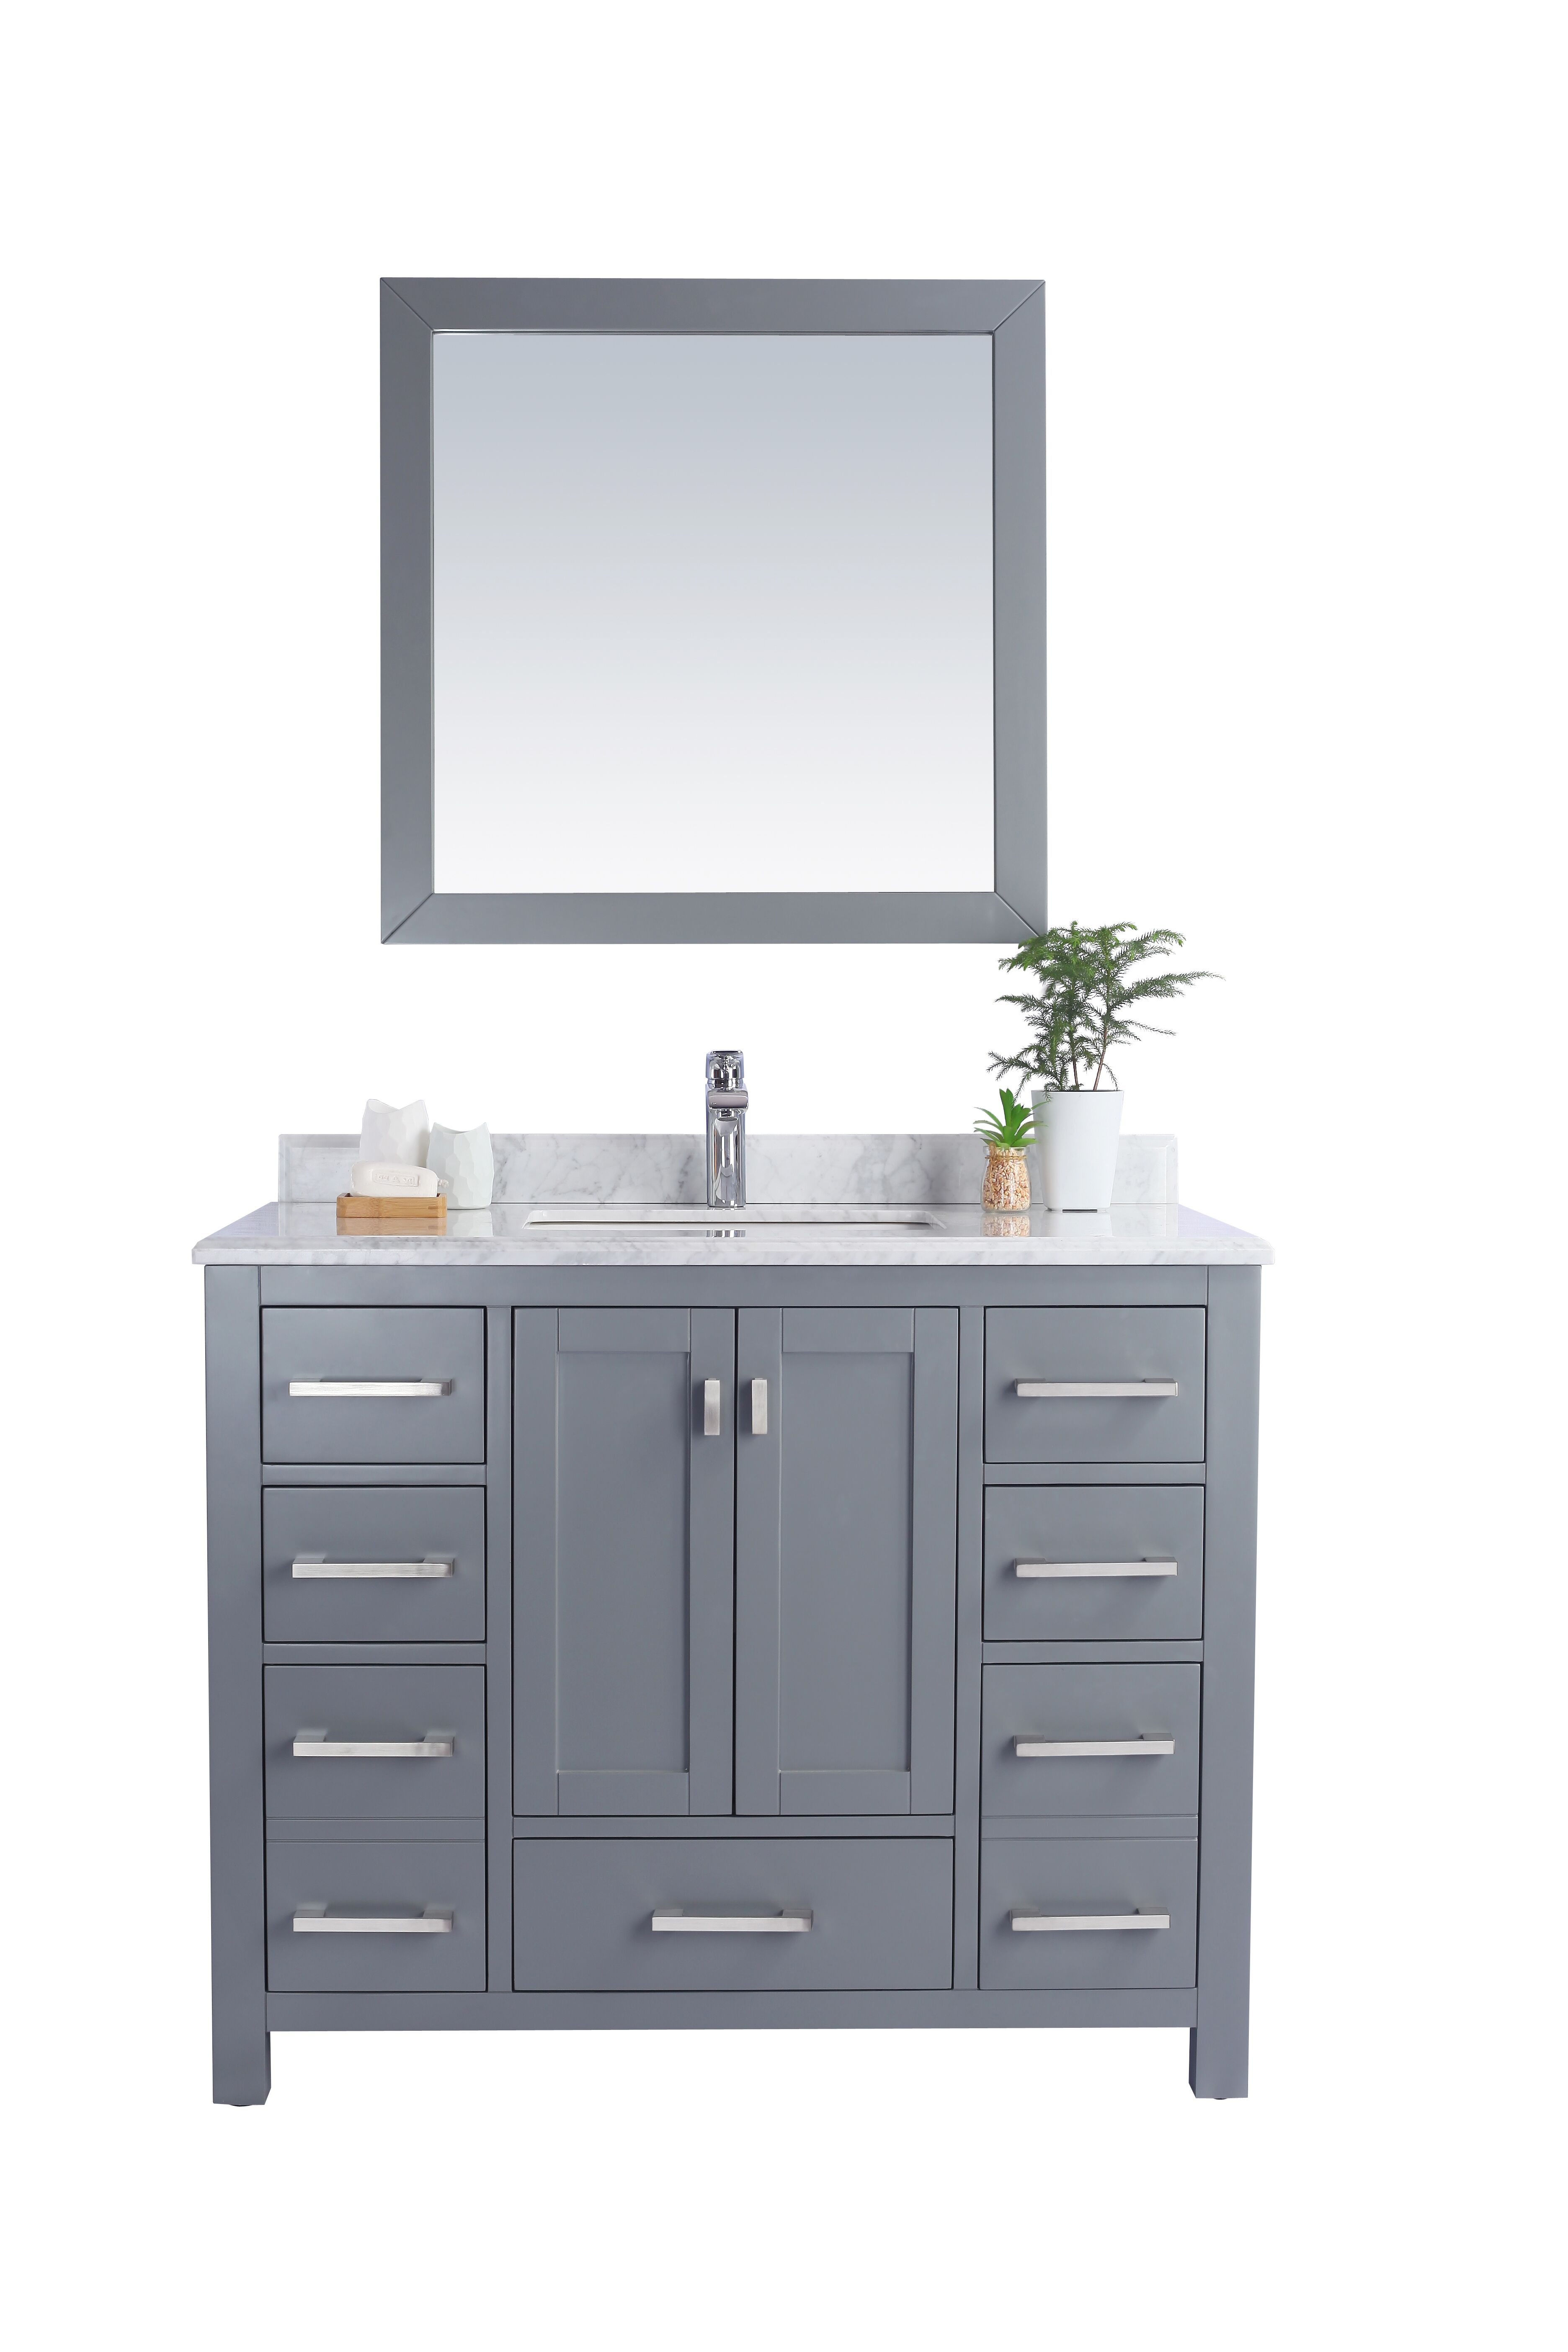 "42"" Single Sink Bathroom Vanity Cabinet + White Carrara Countertop with Mirror Options"